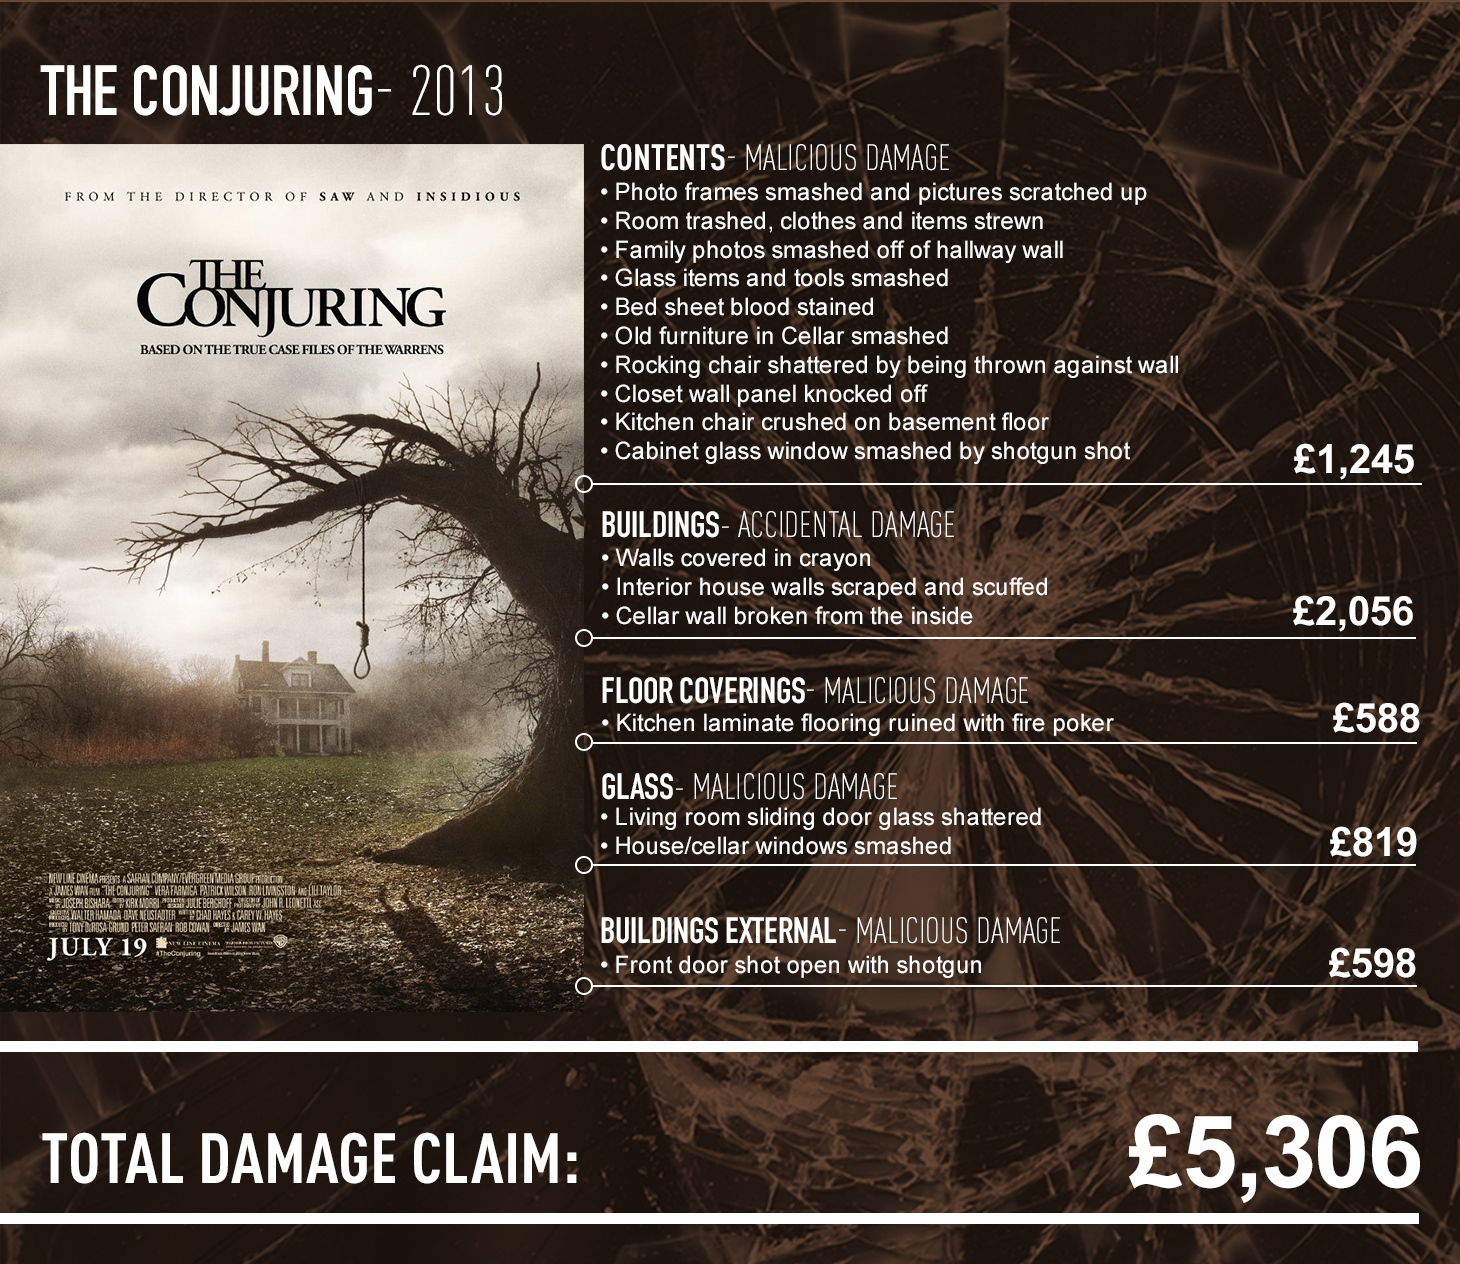 The conjuring claims report